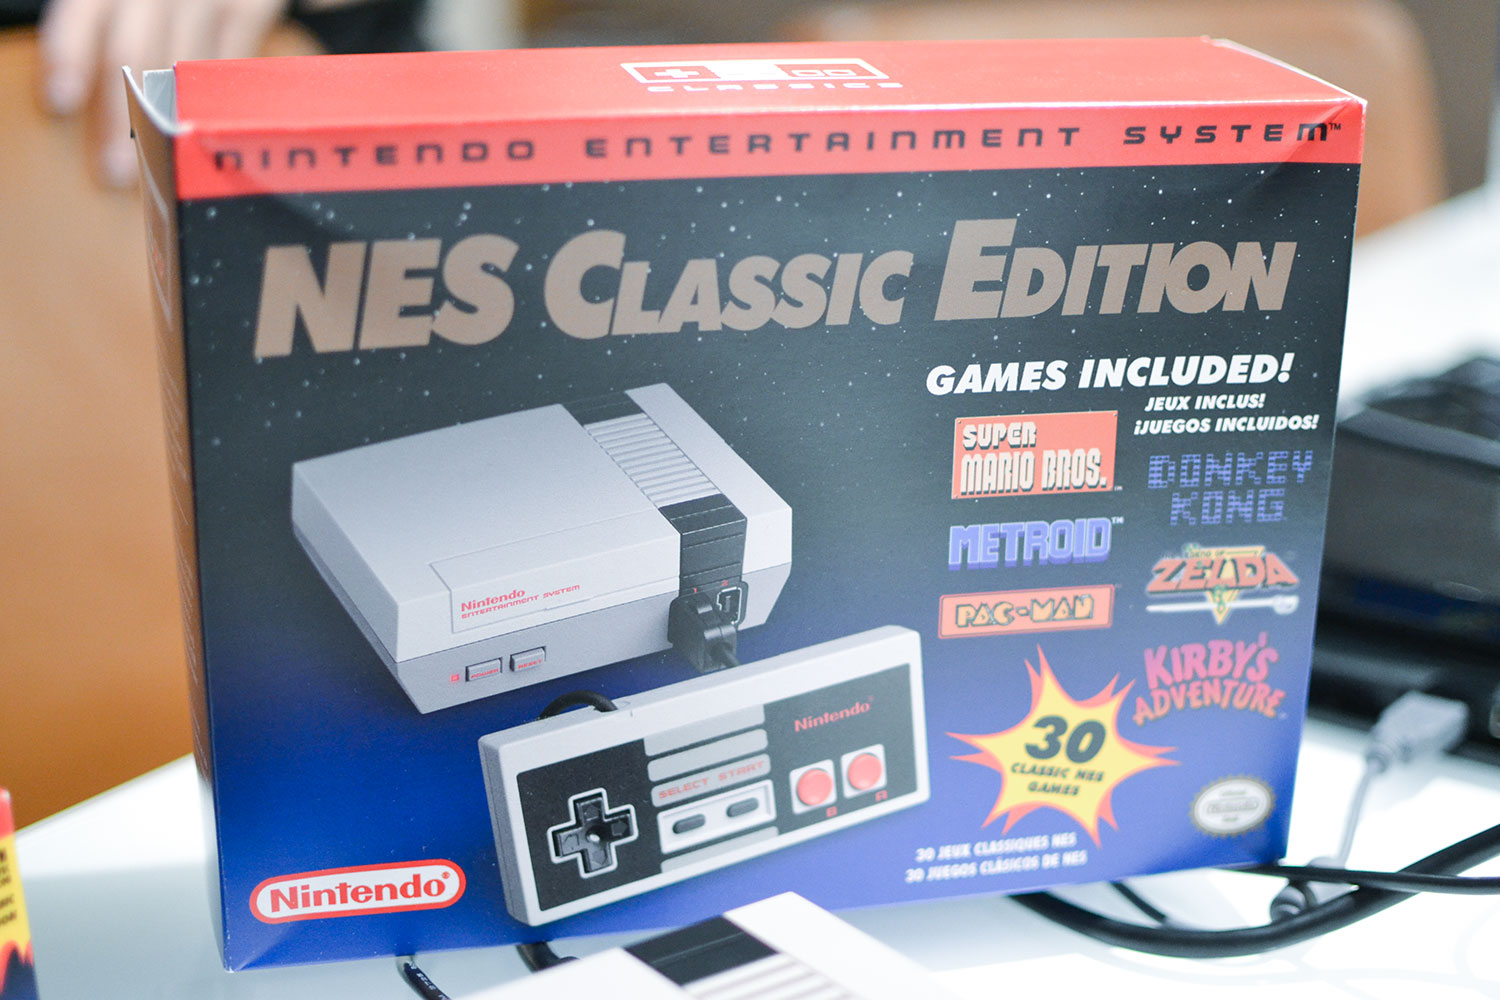 Nintendo Eases Worry About NES Classic Edition Availability Following High Consumer Demand